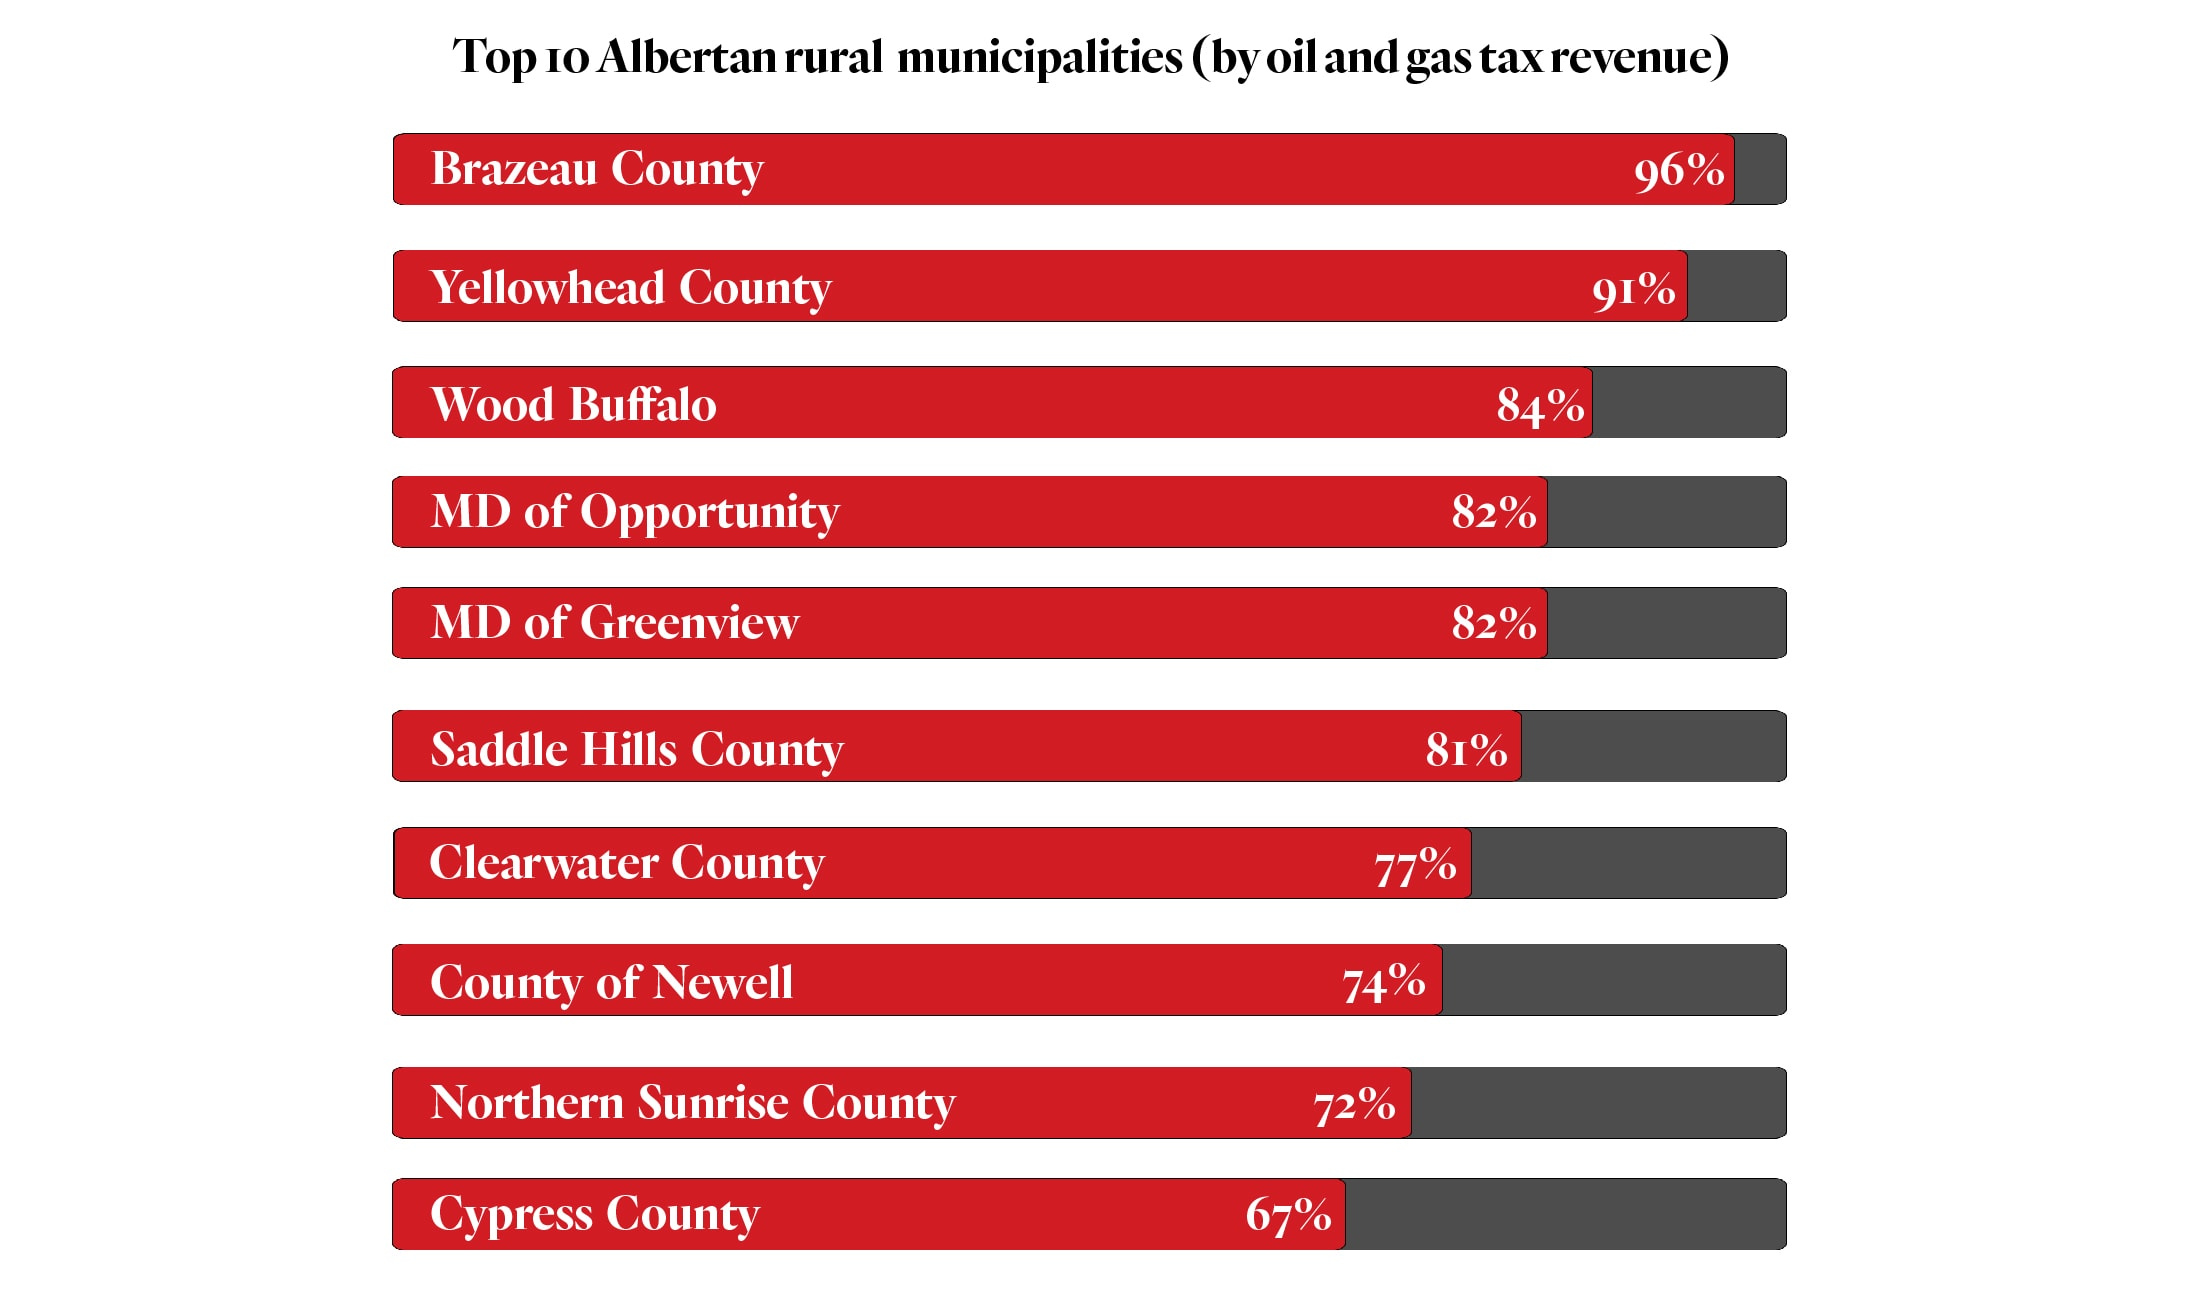 Top 10 Albertan rural municipalities by oil and gas tax revenue reliance